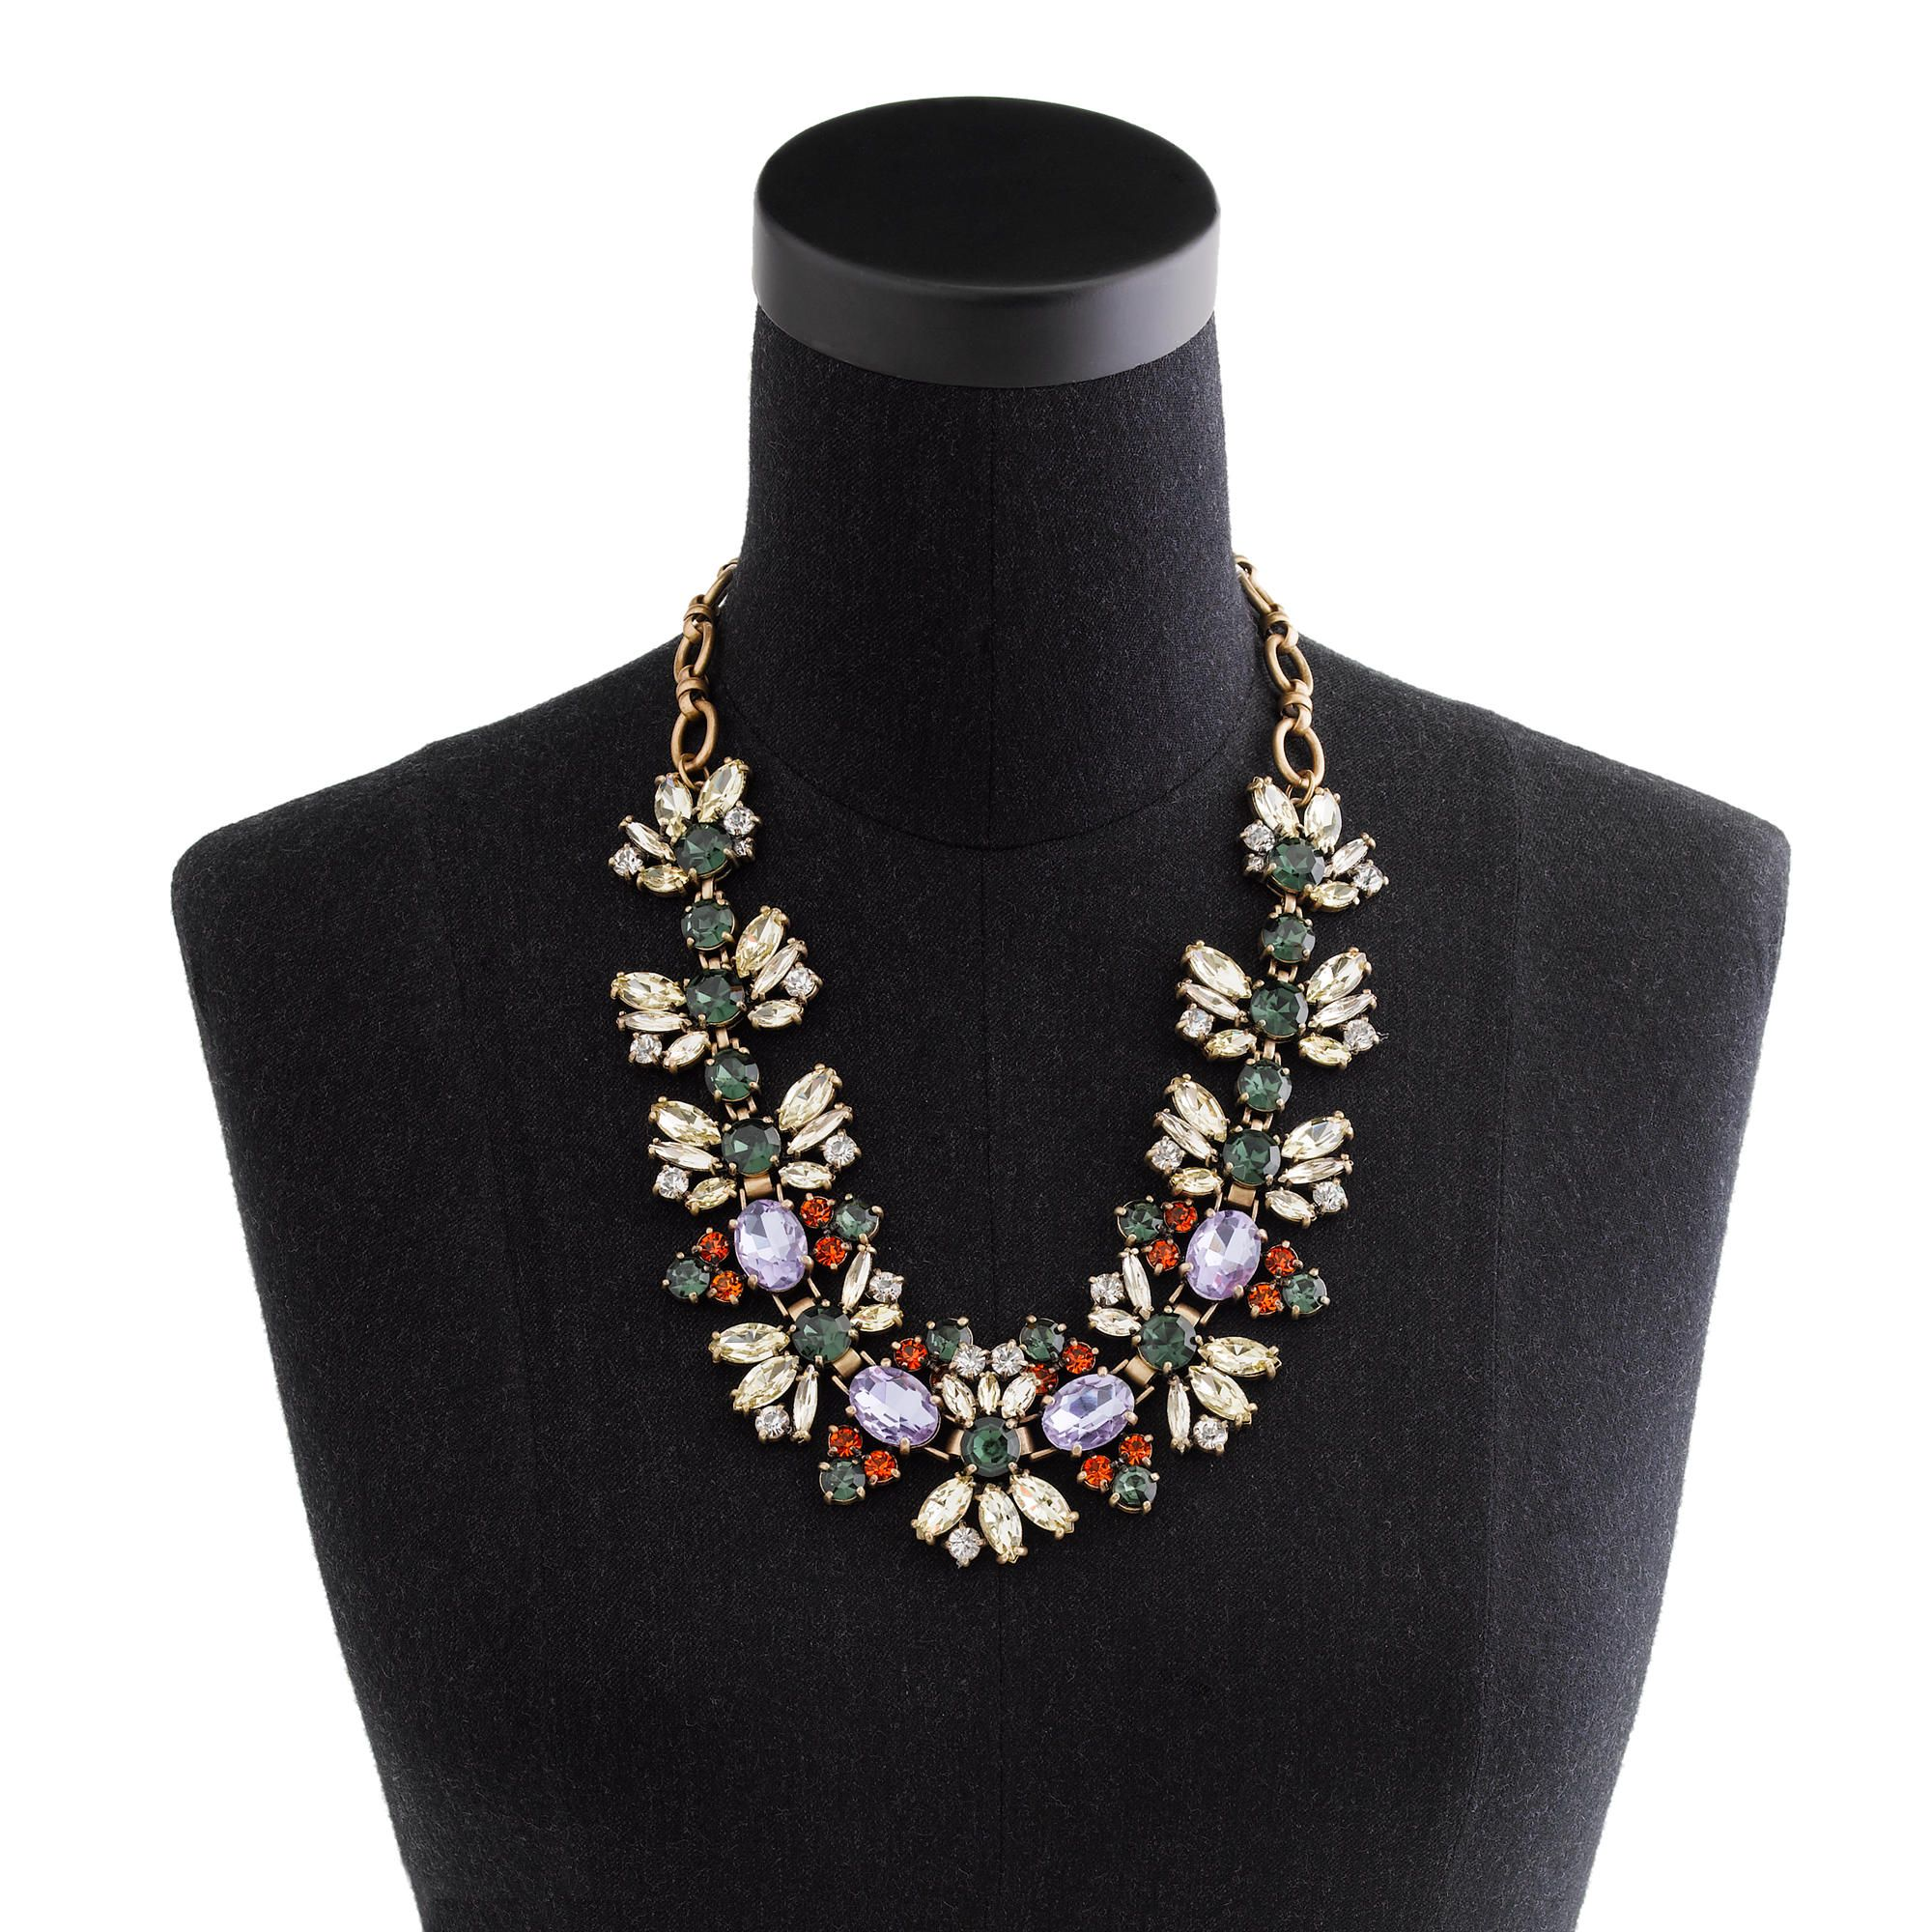 Fall floral crystal necklace necklaces jcrew statement